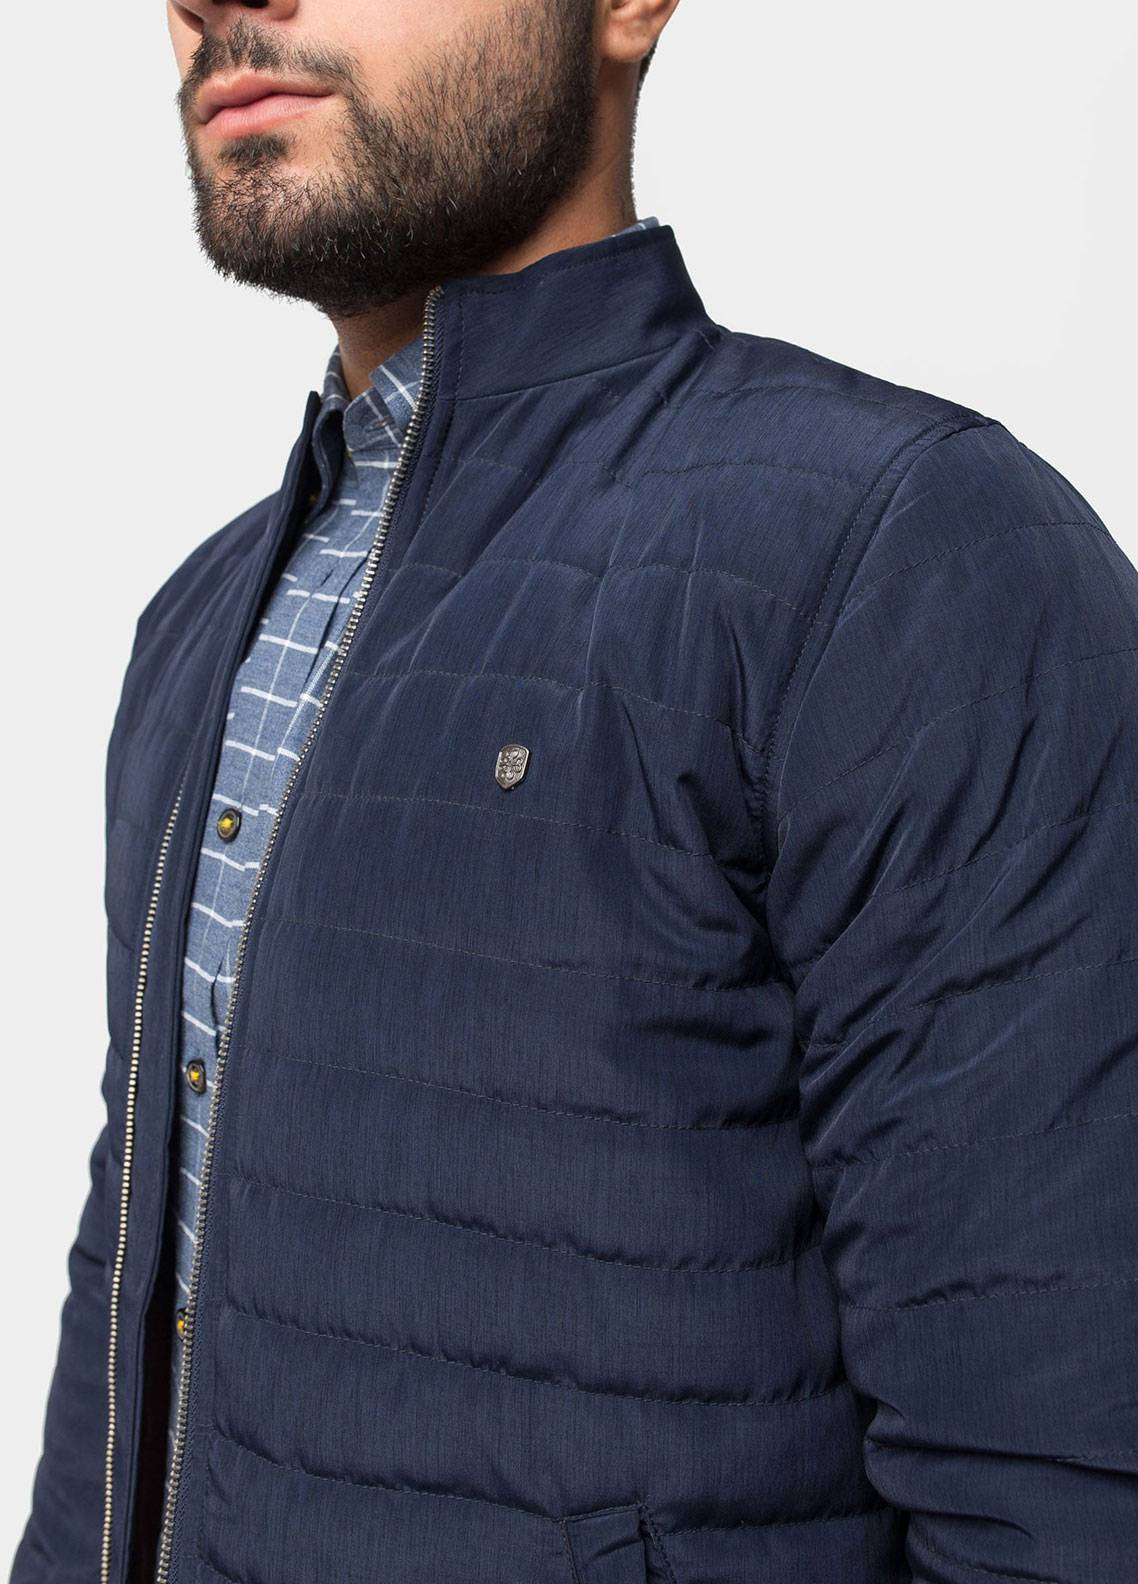 Brumano Polyester Full Sleeves Jackets for Men - Blue BRM-11-1003